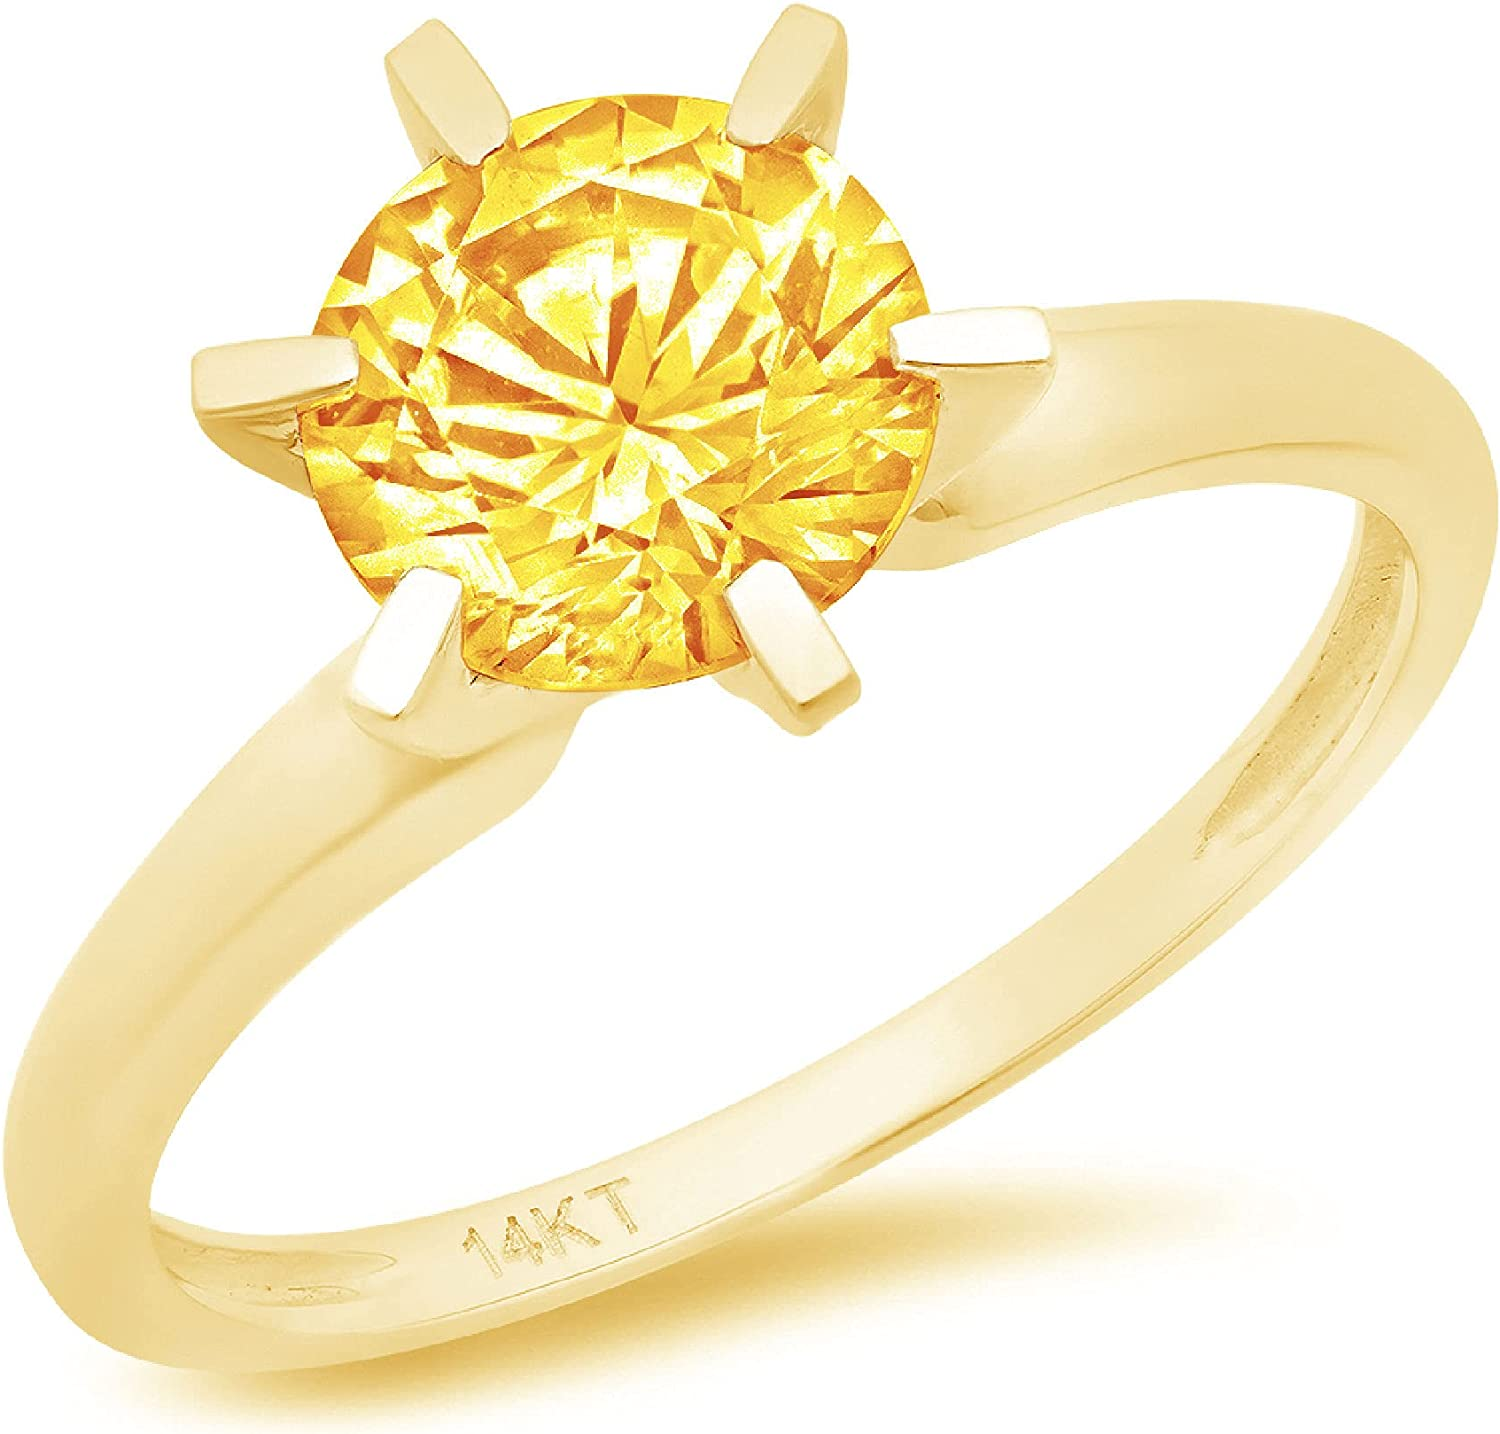 0.9ct Brilliant Round Cut Solitaire Natural Yellow Citrine Ideal VVS1 Engagement Wedding Bridal Promise Anniversary Ring in Solid 14k yellow Gold for Women